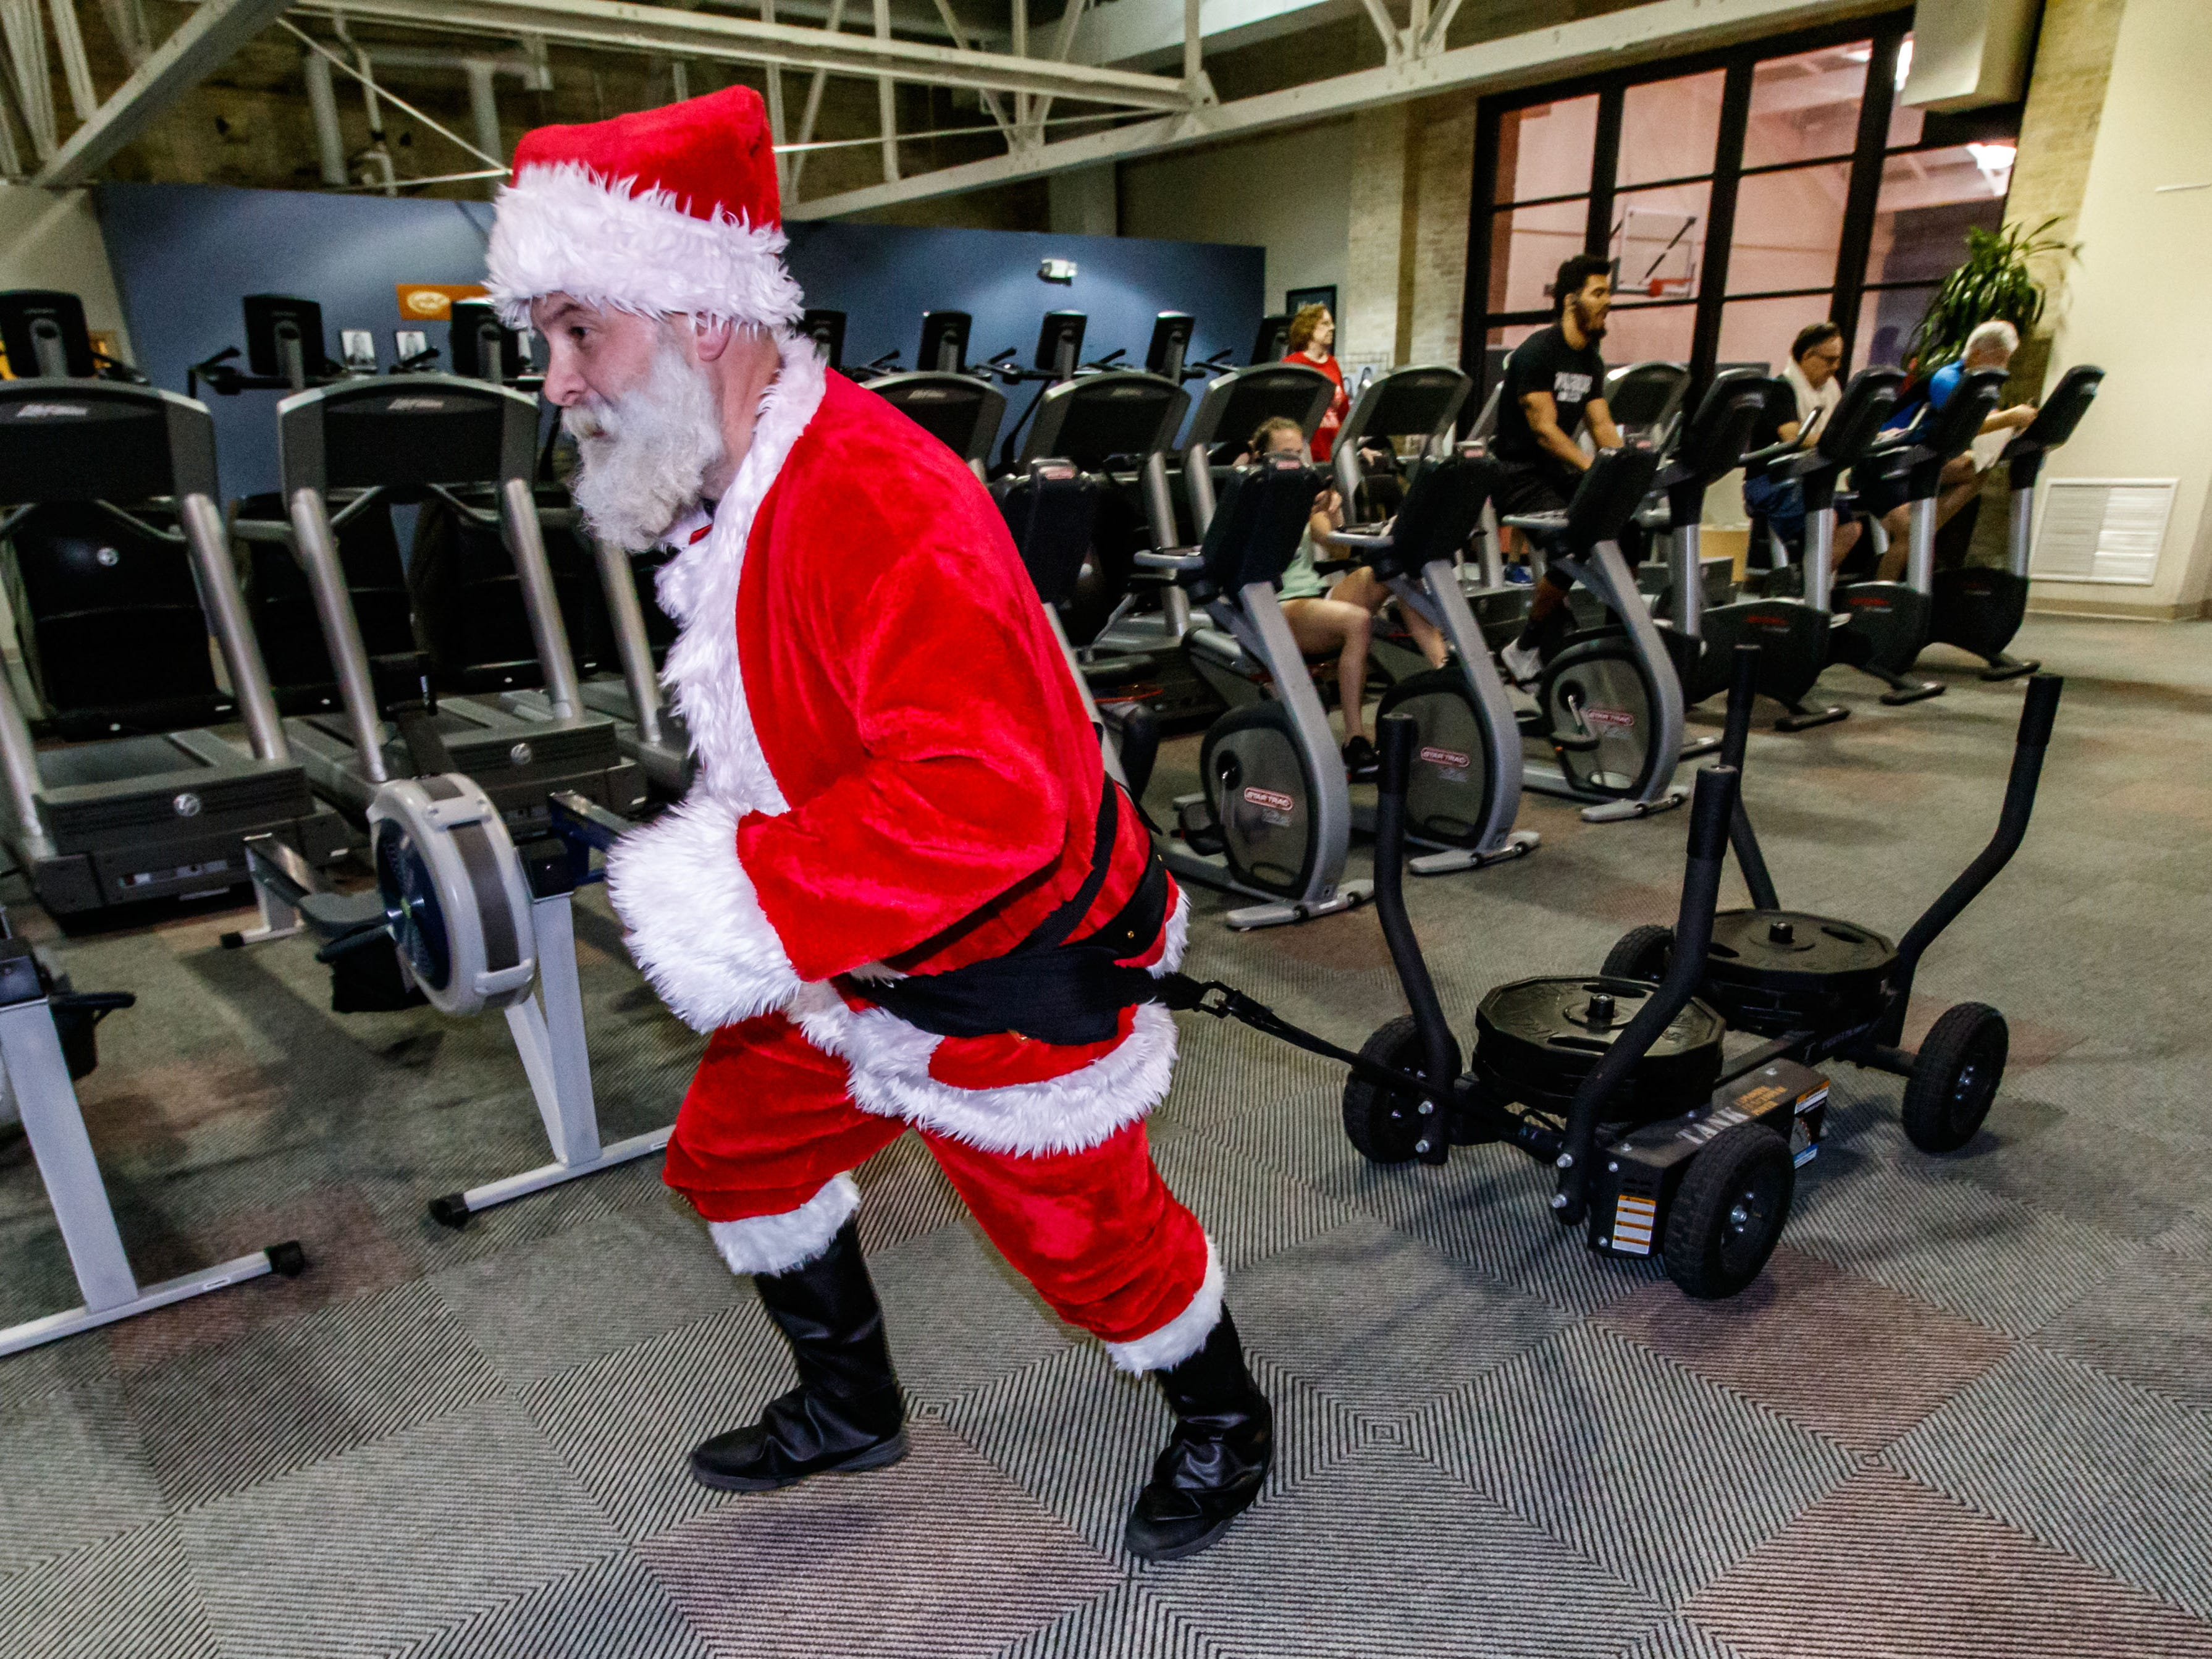 Derek Byrne tows a weight sled in full Santa attire at the Wisconsin Athletic Club in Wauwatosa on Monday, Dec. 10, 2018. Derek, who does strong man competitions and is involved in charity work, dresses up to encourage others to work out.